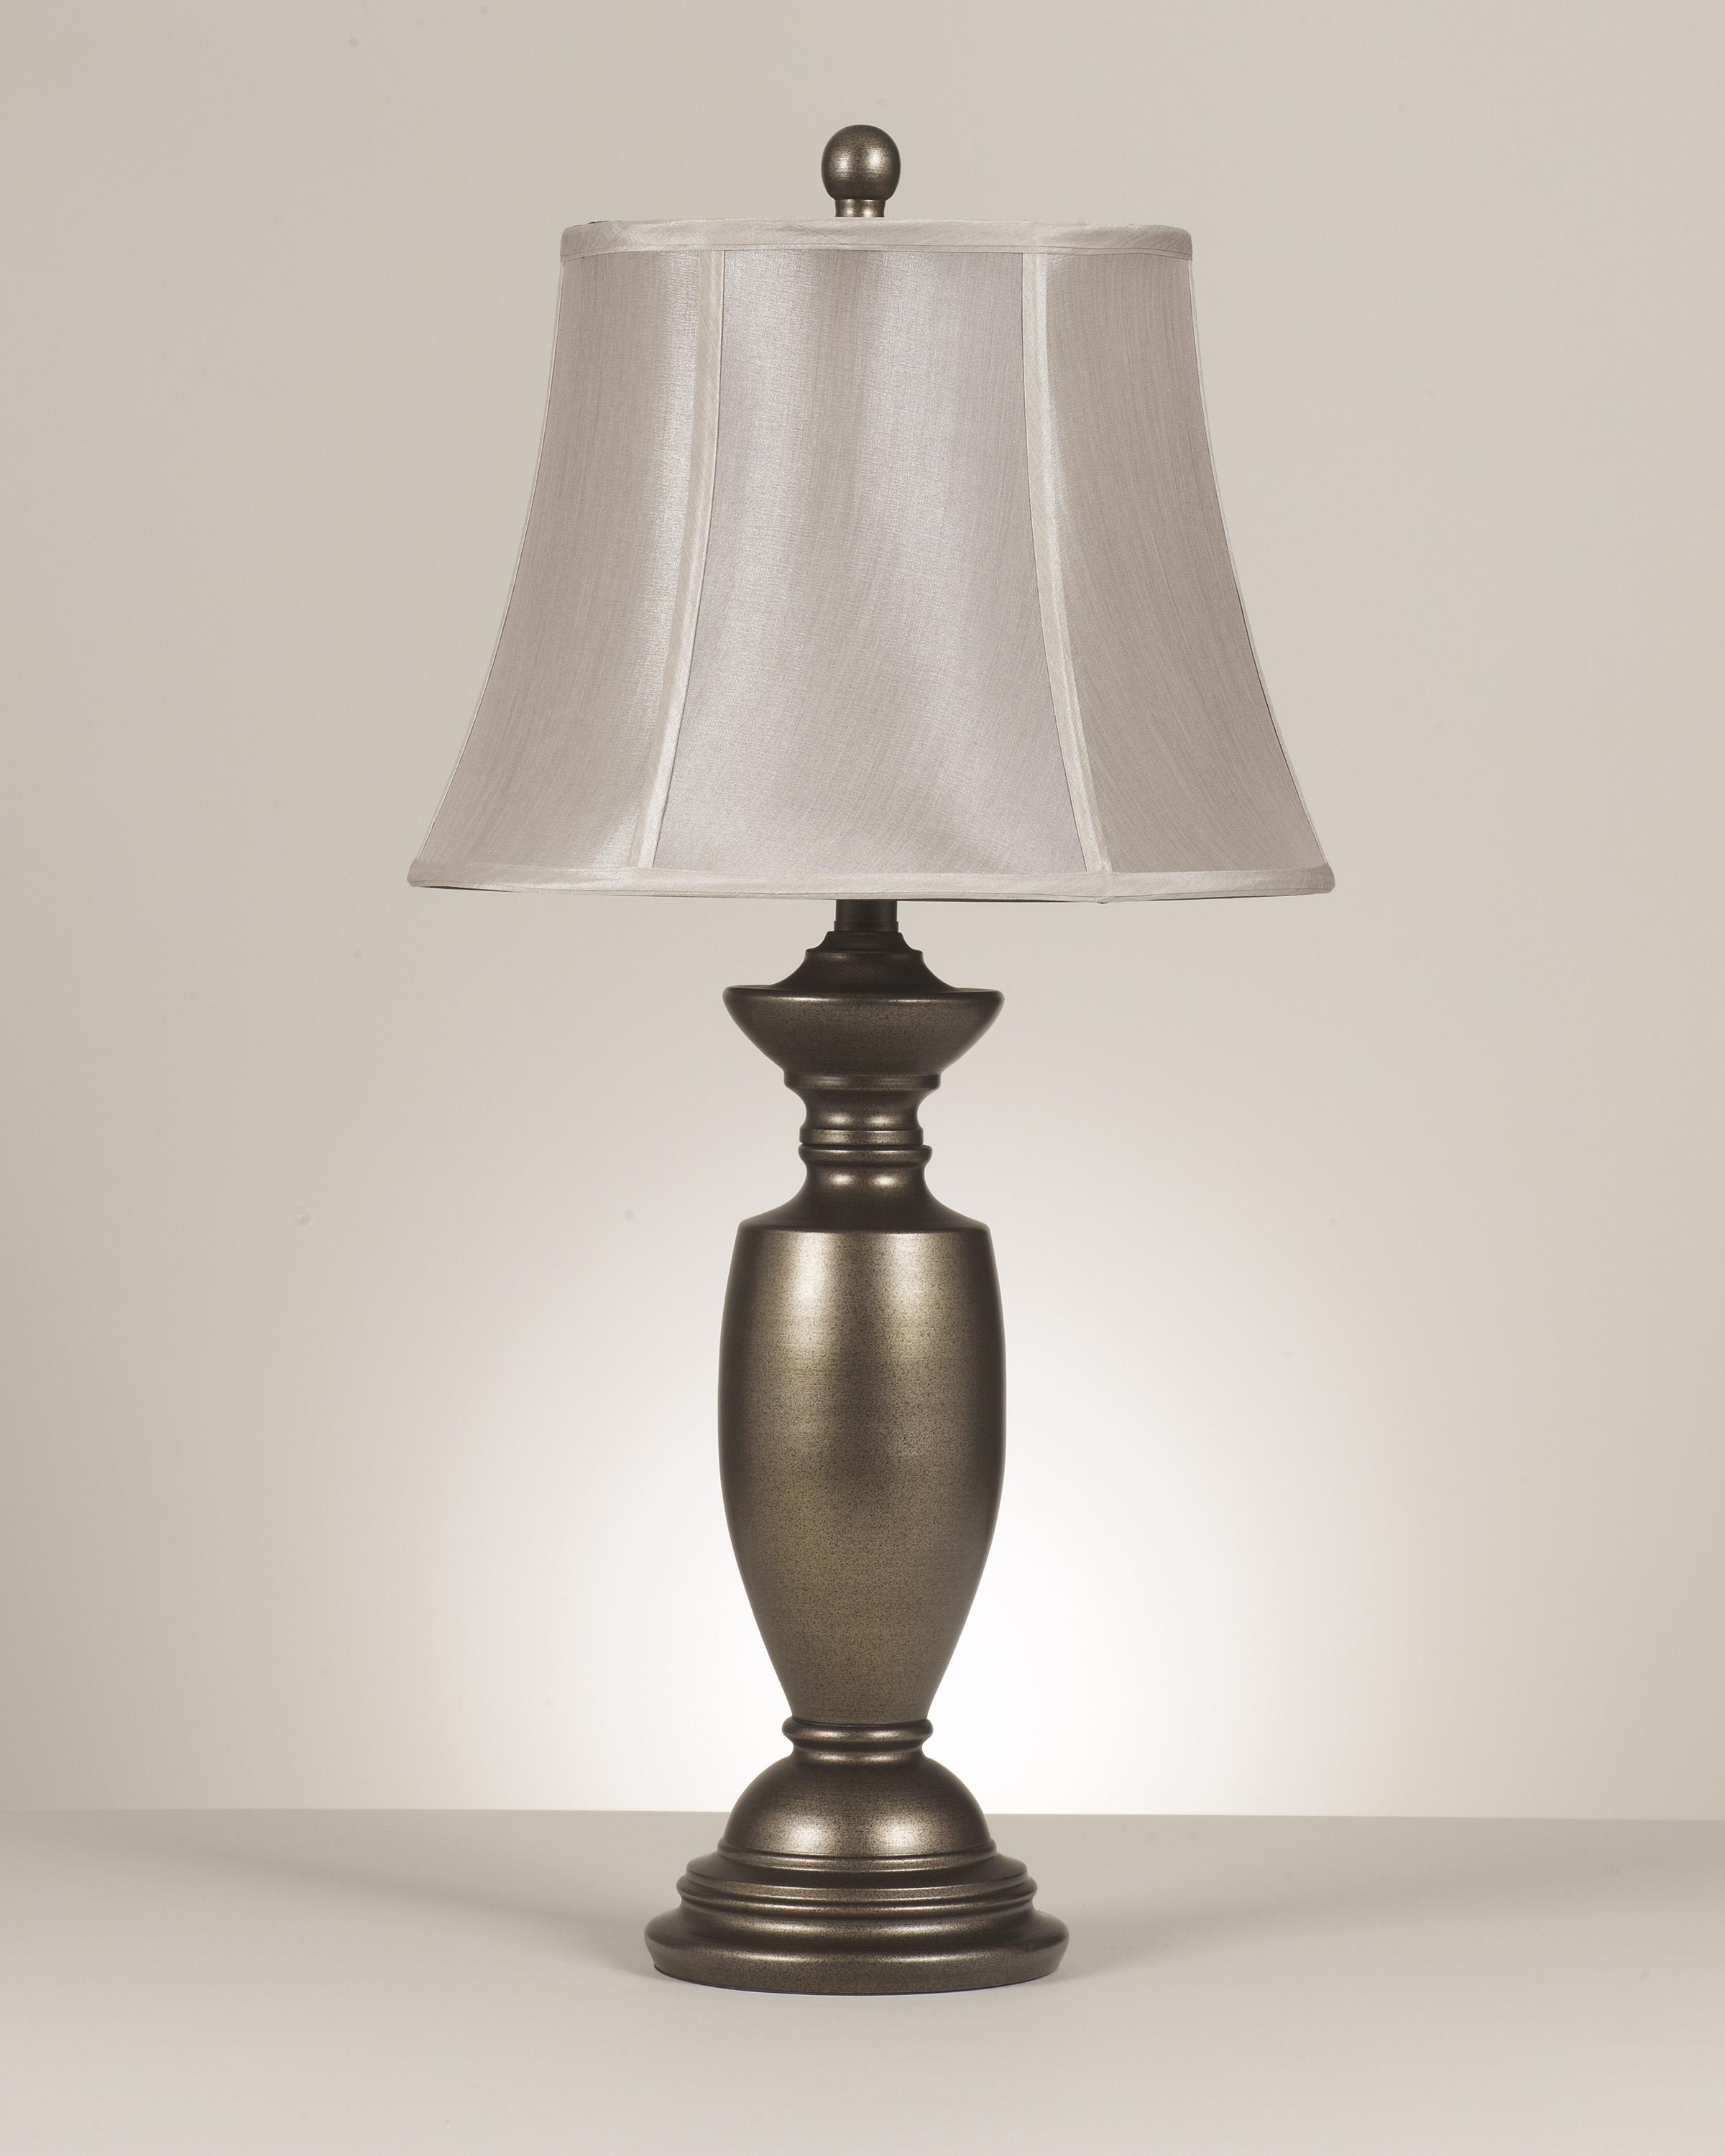 Signature Design by Ashley Lamps - Traditional Classics Set of 2 Ruth Metal Table Lamps - Item Number: L200934